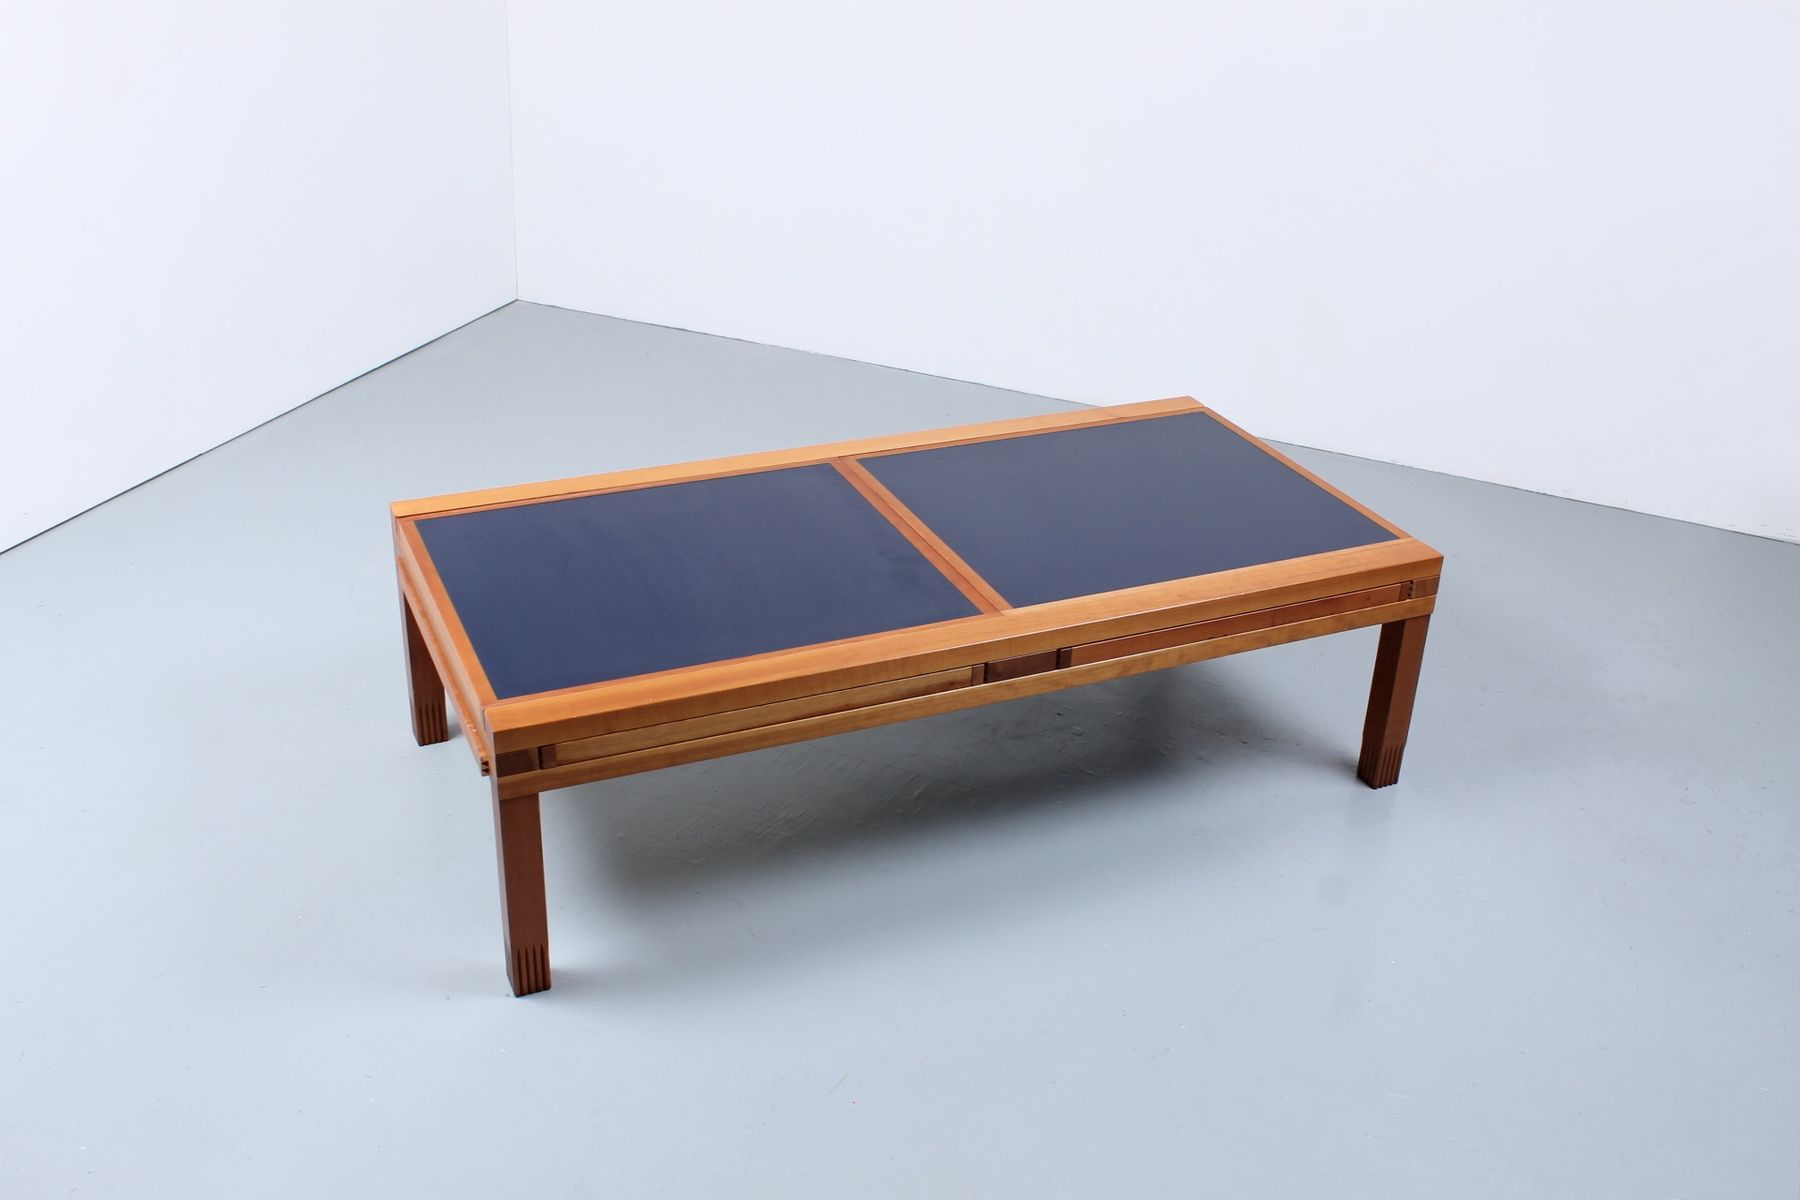 Design Modular Coffee Table astounding modular coffee table contemporary best inspiration vintage blue and white iroko by bernard